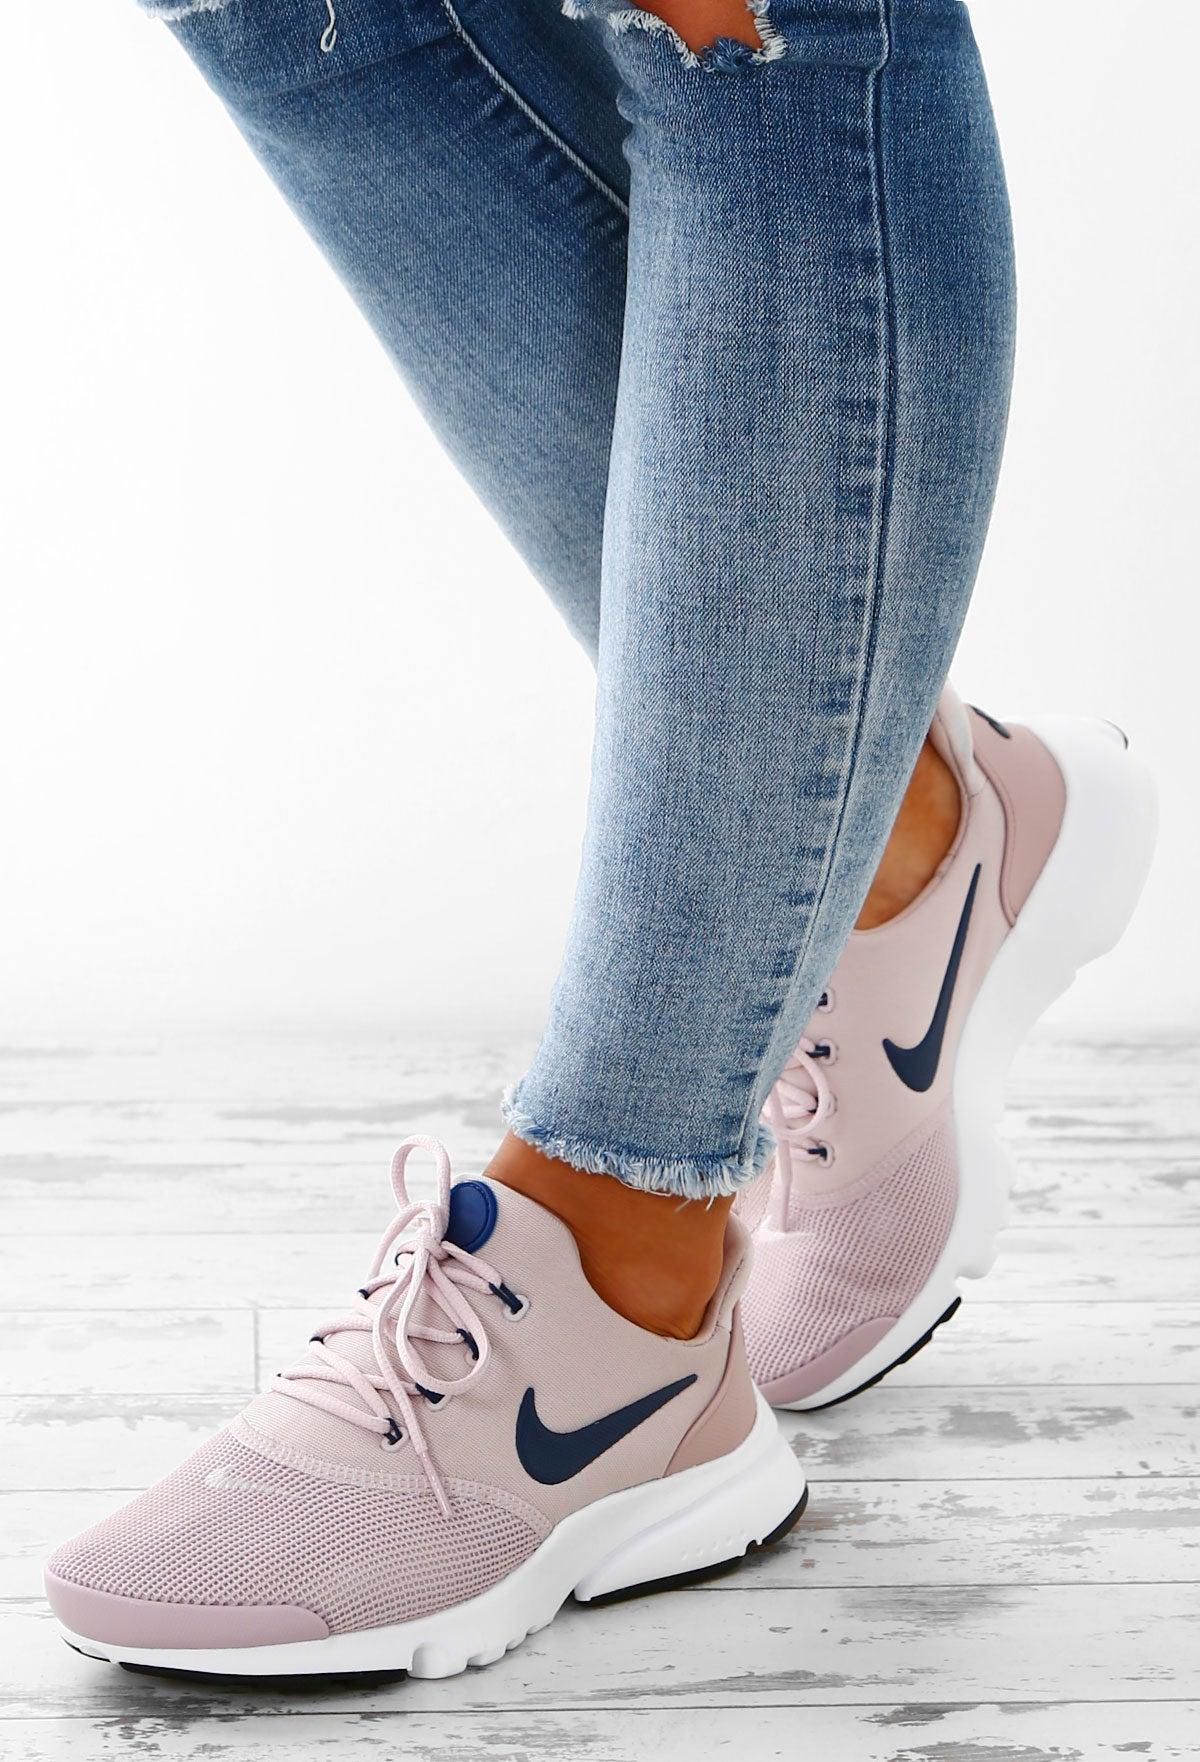 timeless design 20363 cb9cf Nike Presto Rose Pink Flyknit Trainers – Pink Boutique UK